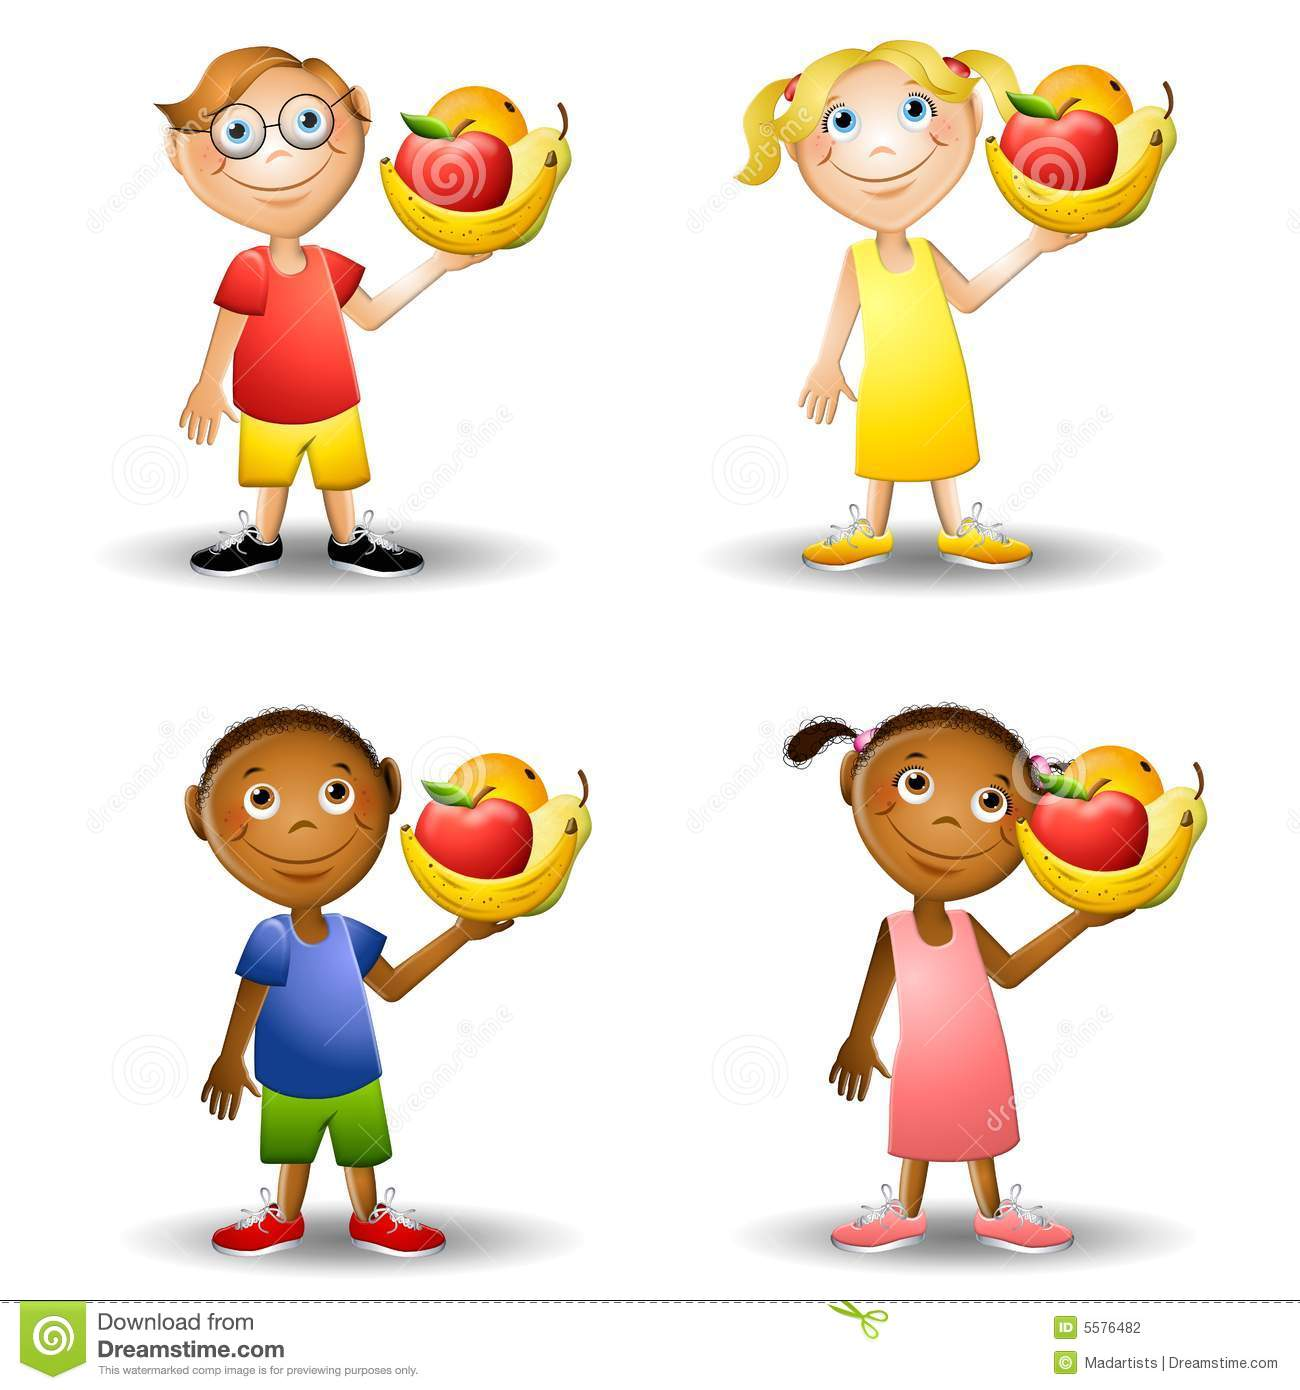 ... of kids holding healthy fresh foods - apple, bananas, pear and orange